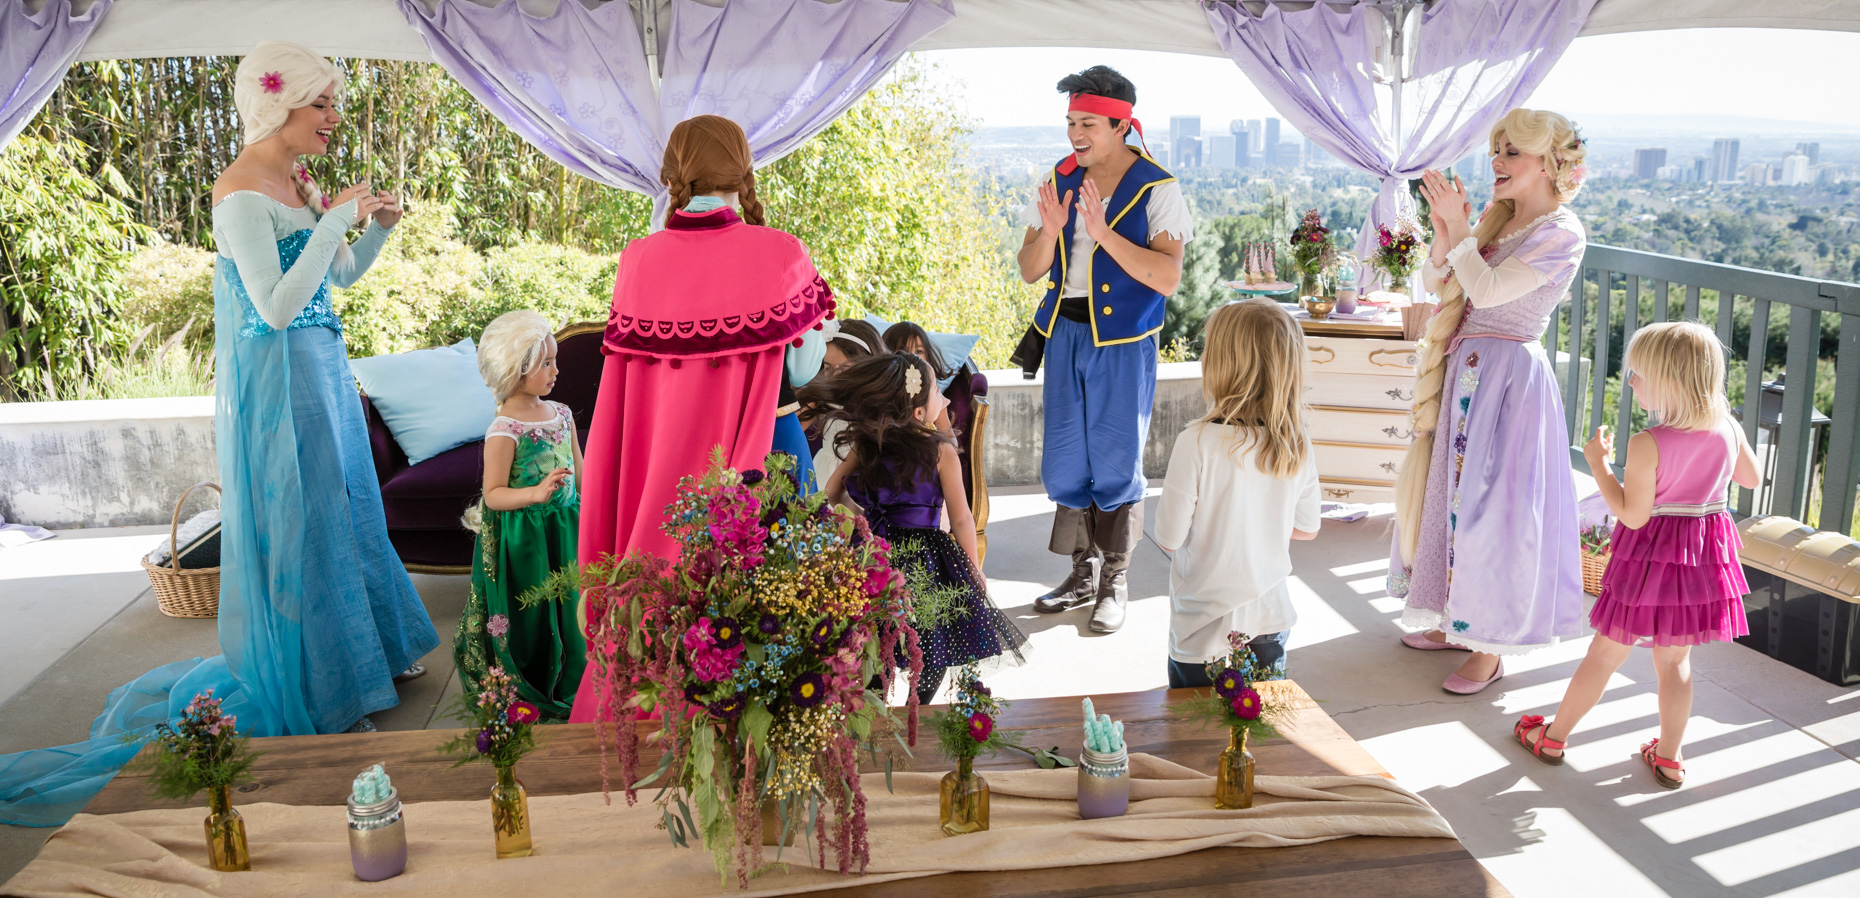 Princess party with Rapunzel, Snow Queen,Norwegian Princess, and our young Neverland Pirate in Beverly Hills. Photo by  Jeff Drongowski .